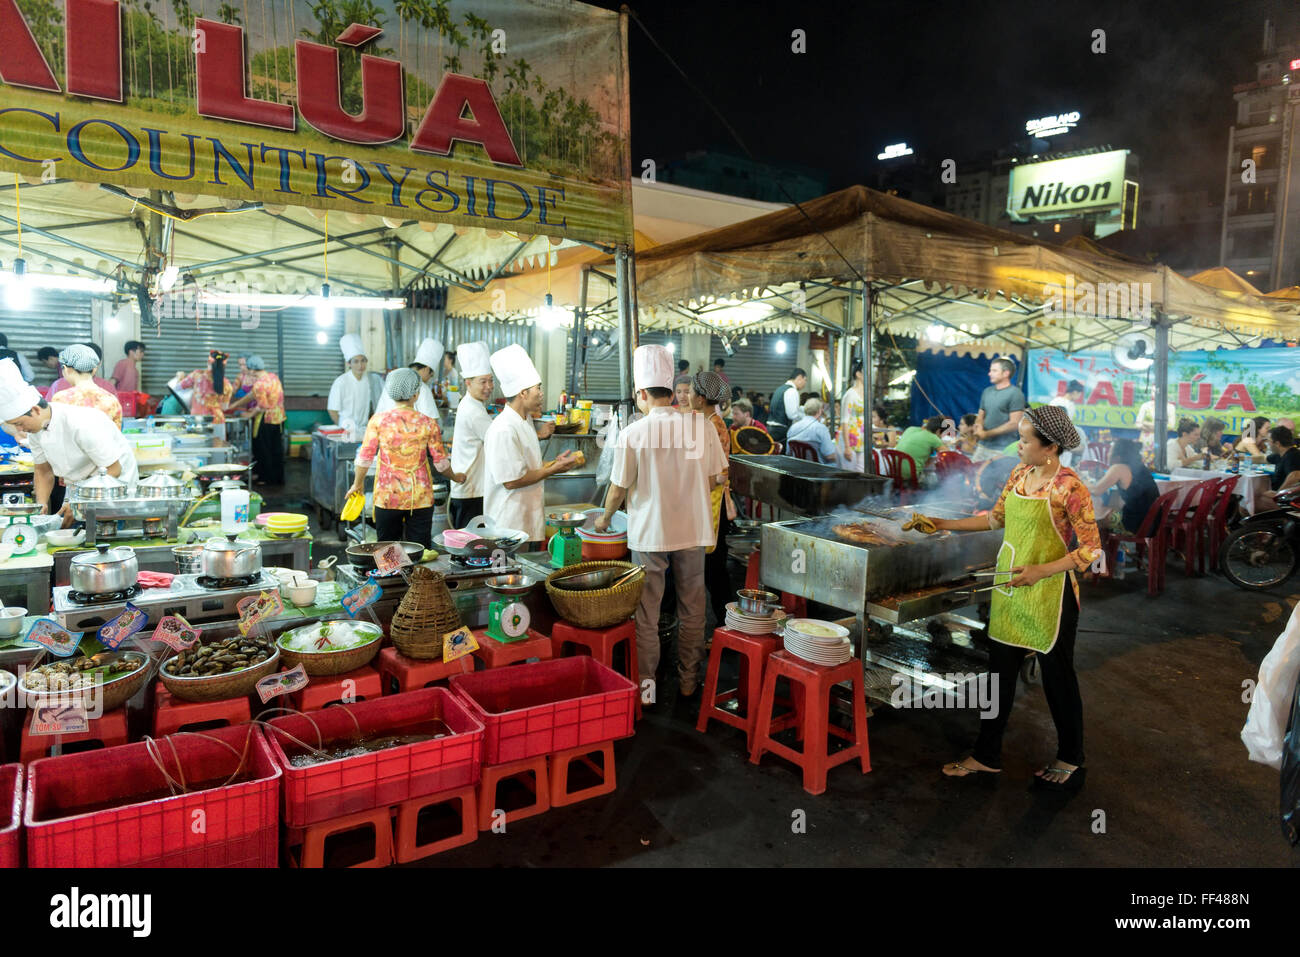 Chợ Bến Thành Market, Bến Nghé District, Ho Chi Minh City (Saigon), Vietnam nightmarket street kitchens - Stock Image